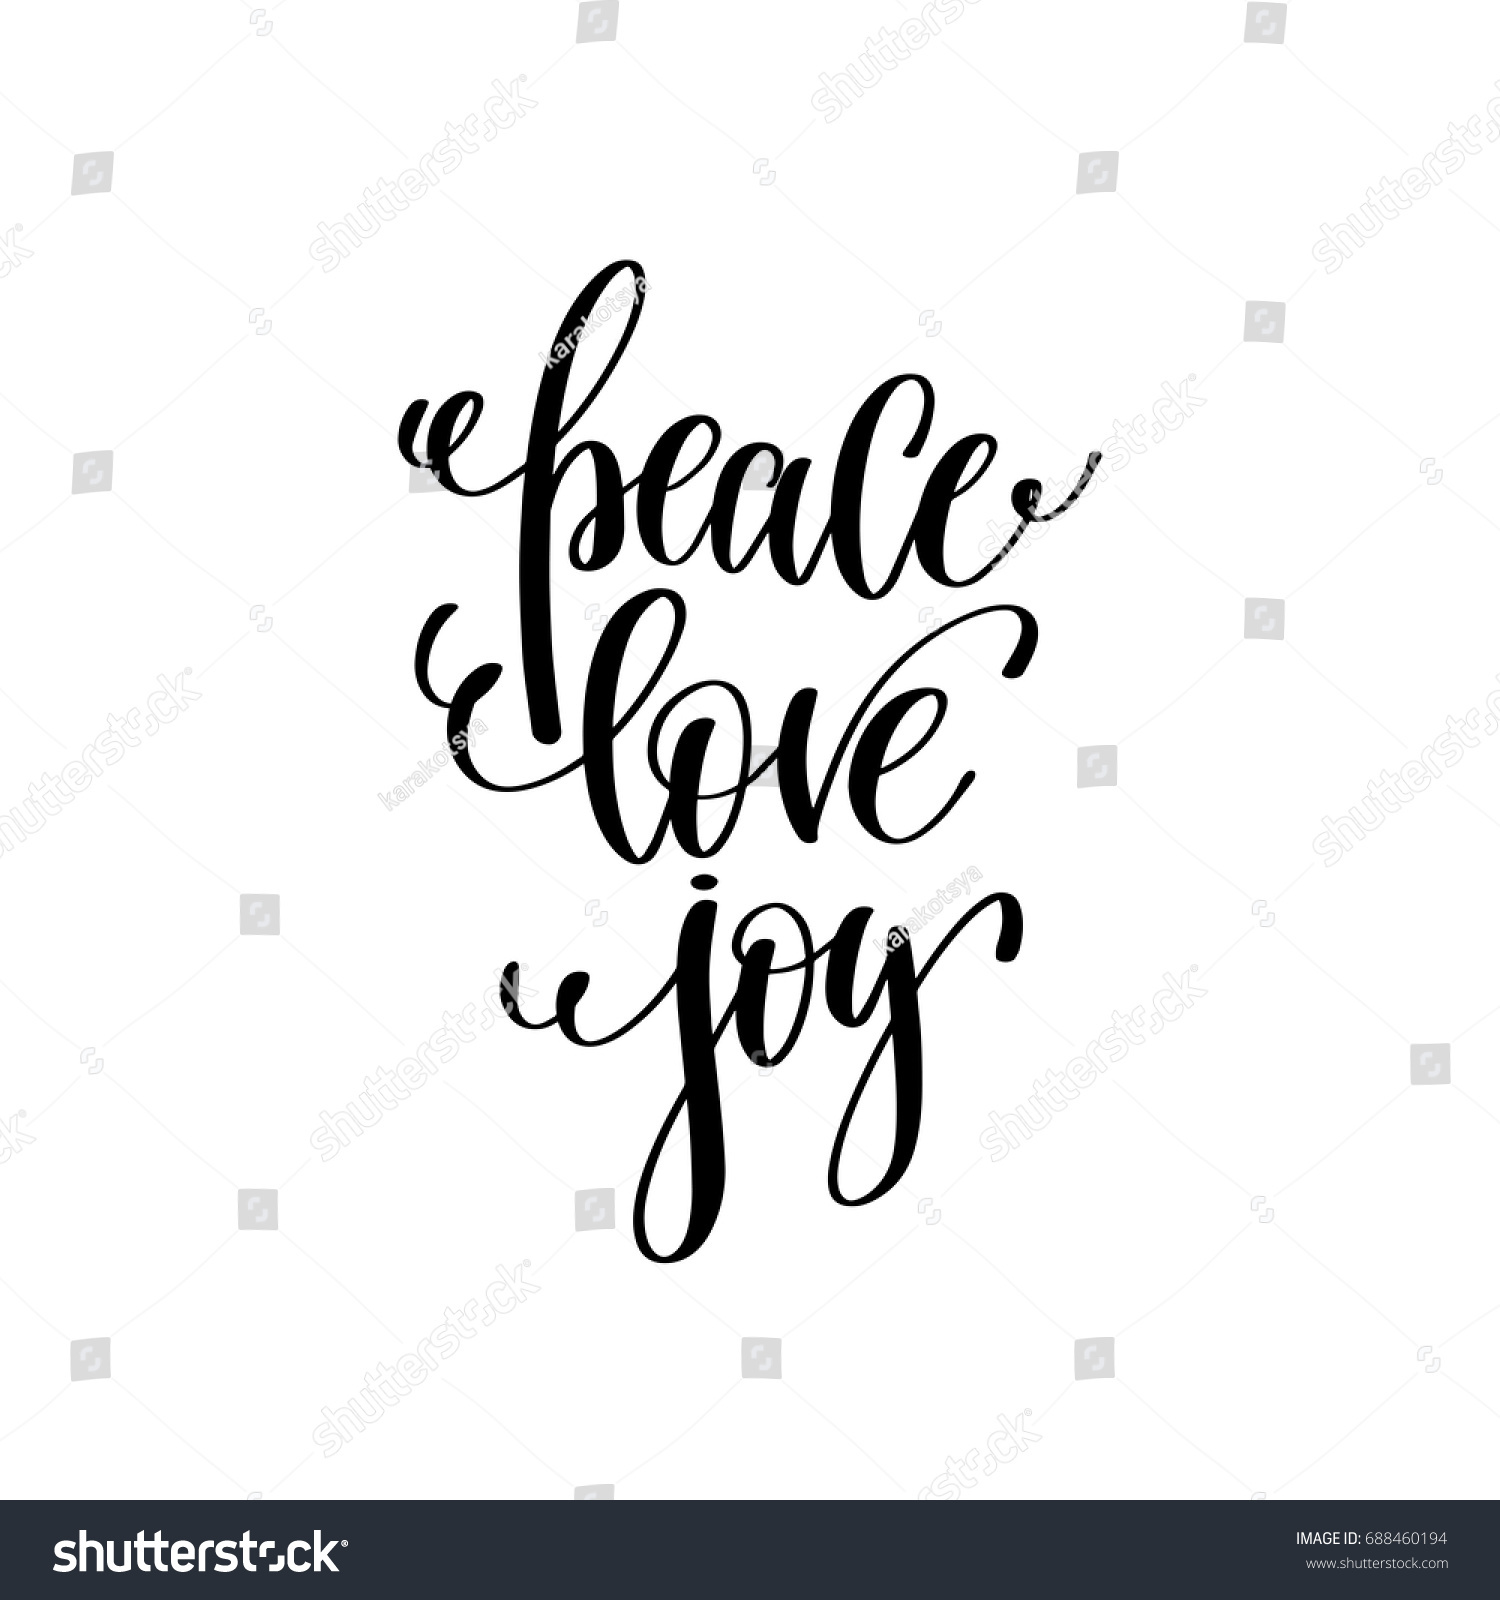 Peace Love Joy Quotes Mesmerizing Peace Love Joy Hand Lettering Positive Stock Vector 688460194